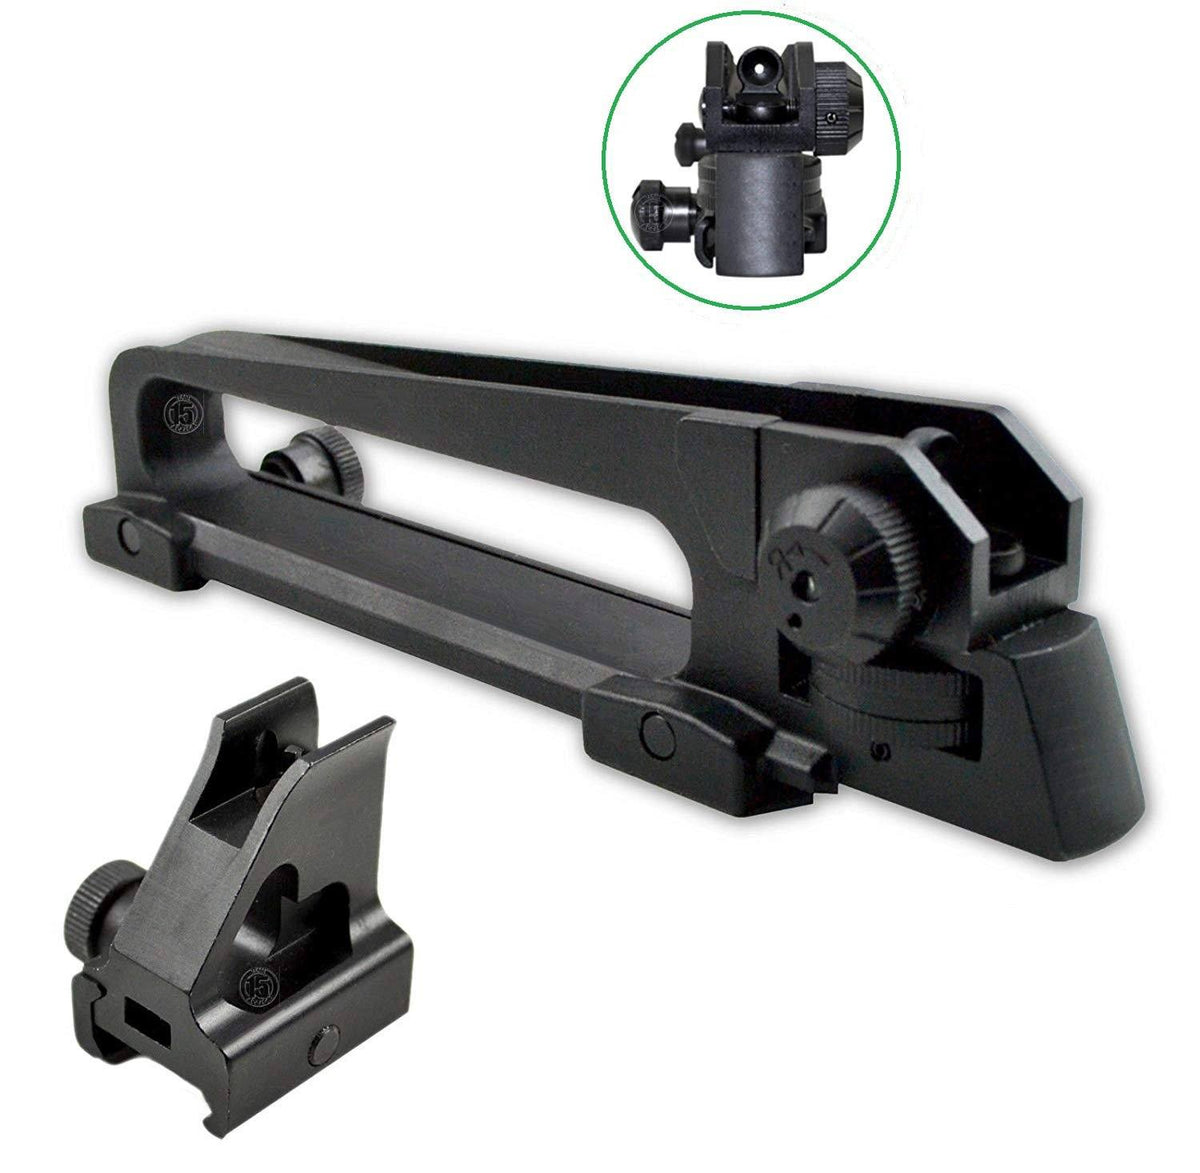 AR15 Carry Handle Sight with High Profile Front Sight for Lower Gas Block Sights GBO